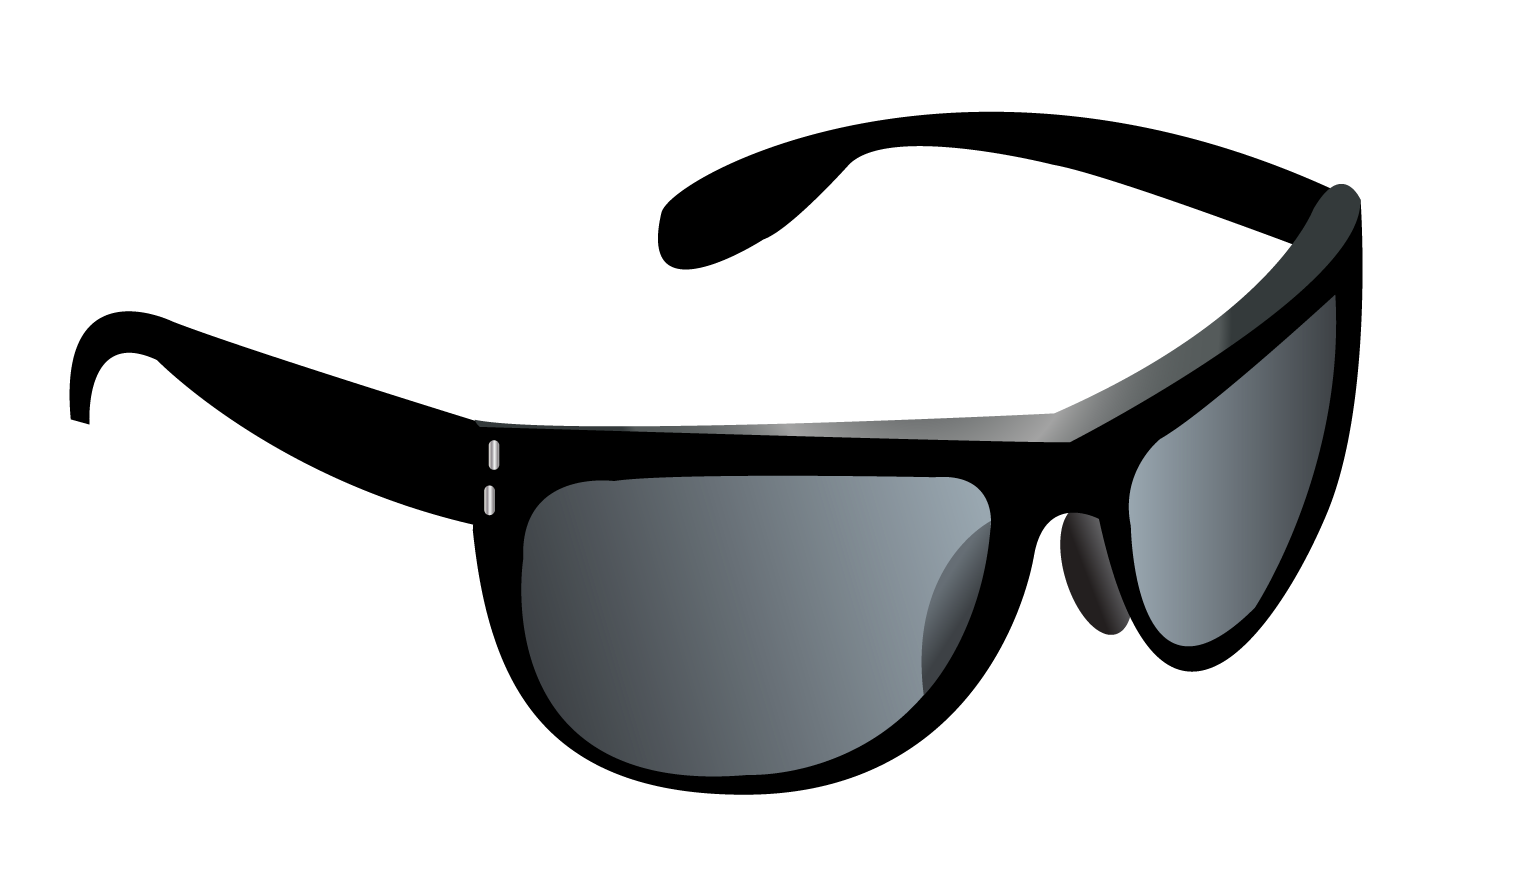 Clipart sunglasses black and white. Ray ban clubmaster